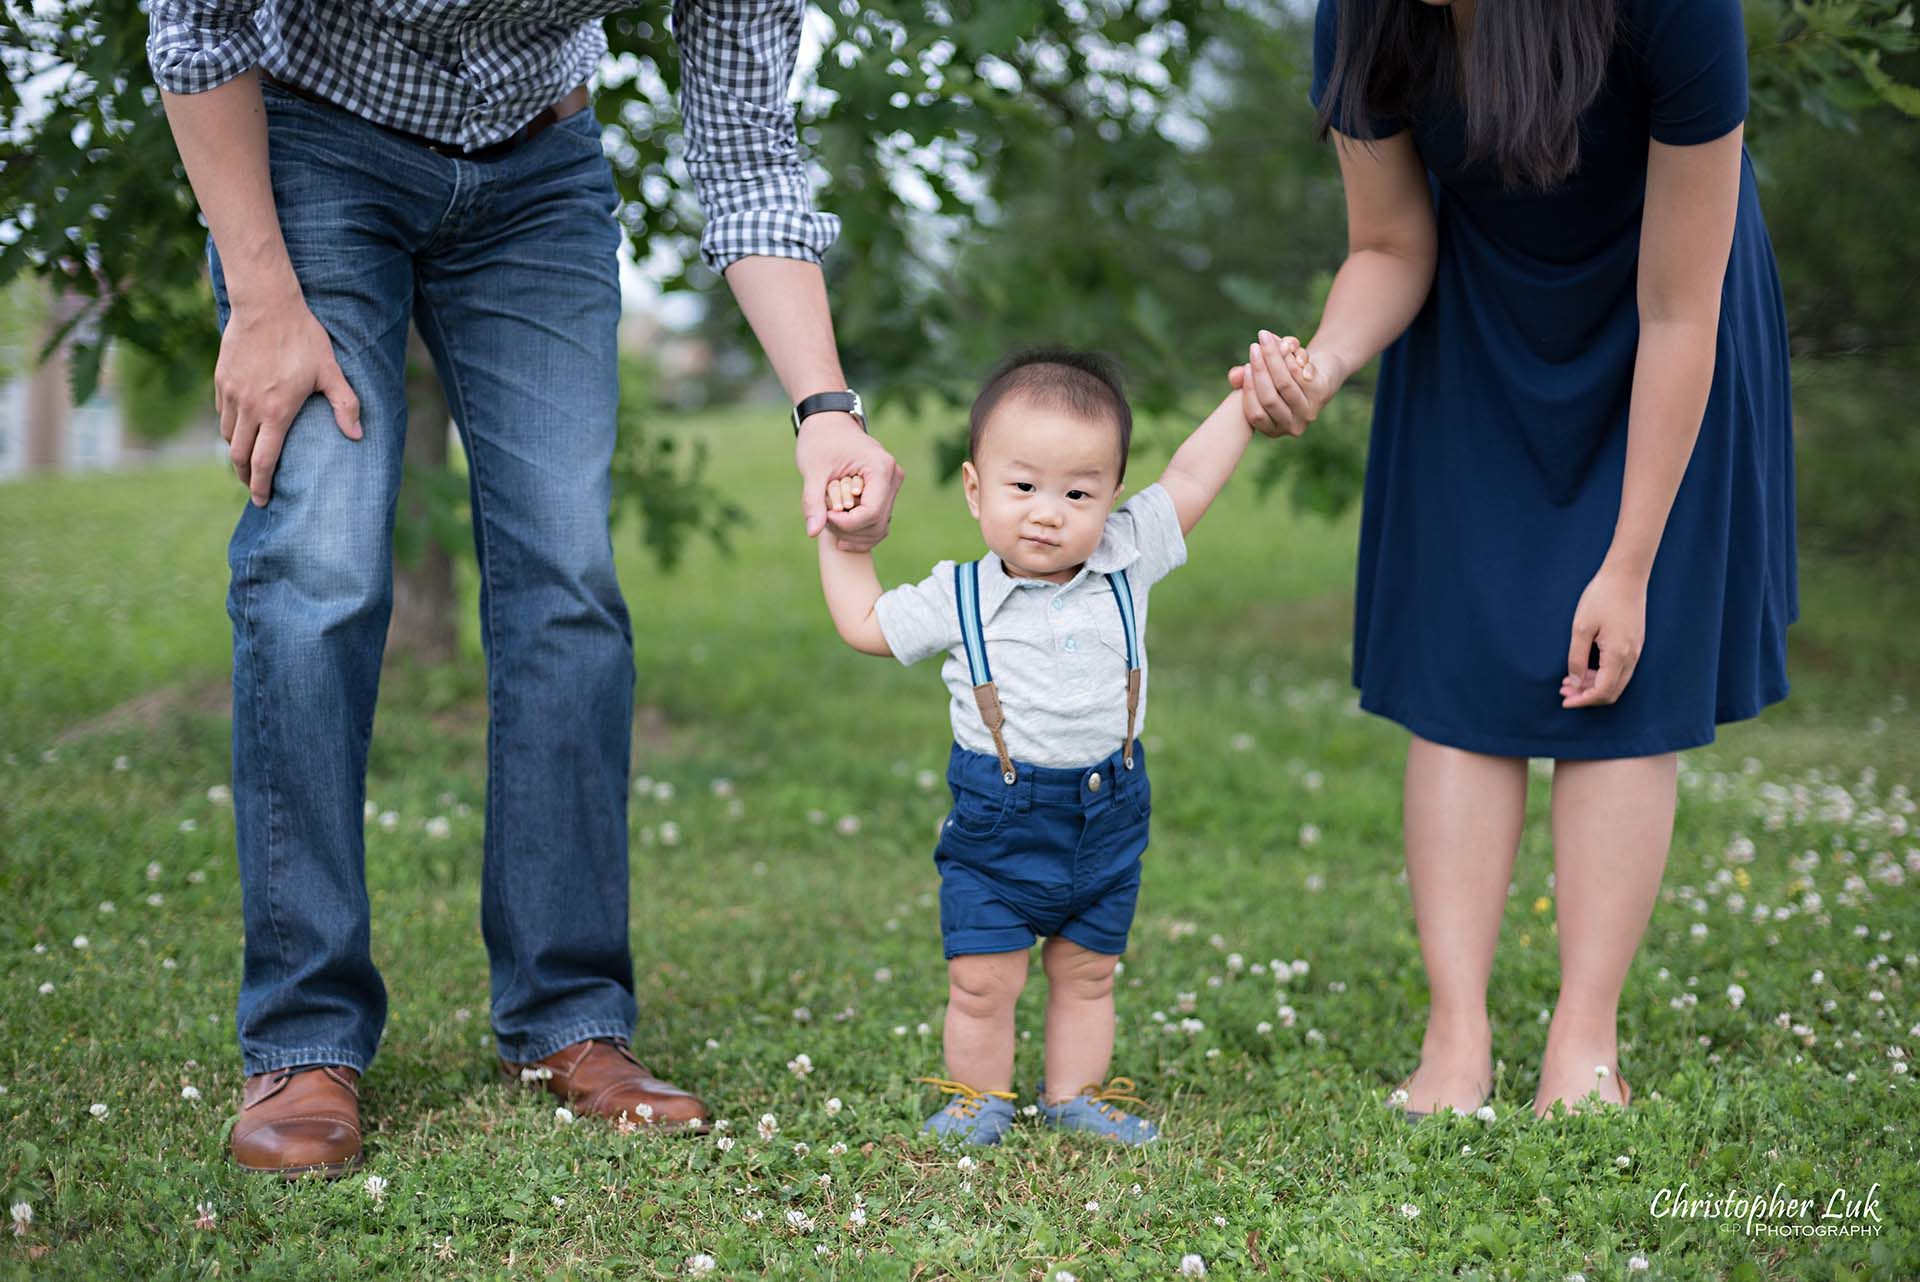 Christopher Luk Family Baby Wedding Photographer Richmond Hill Markham Toronto - Candid Natural Photojournalistic Father Mother Dad Mom Motherhood Fatherhood Baby Smile Cute Adorable Standing Up Holding Hands